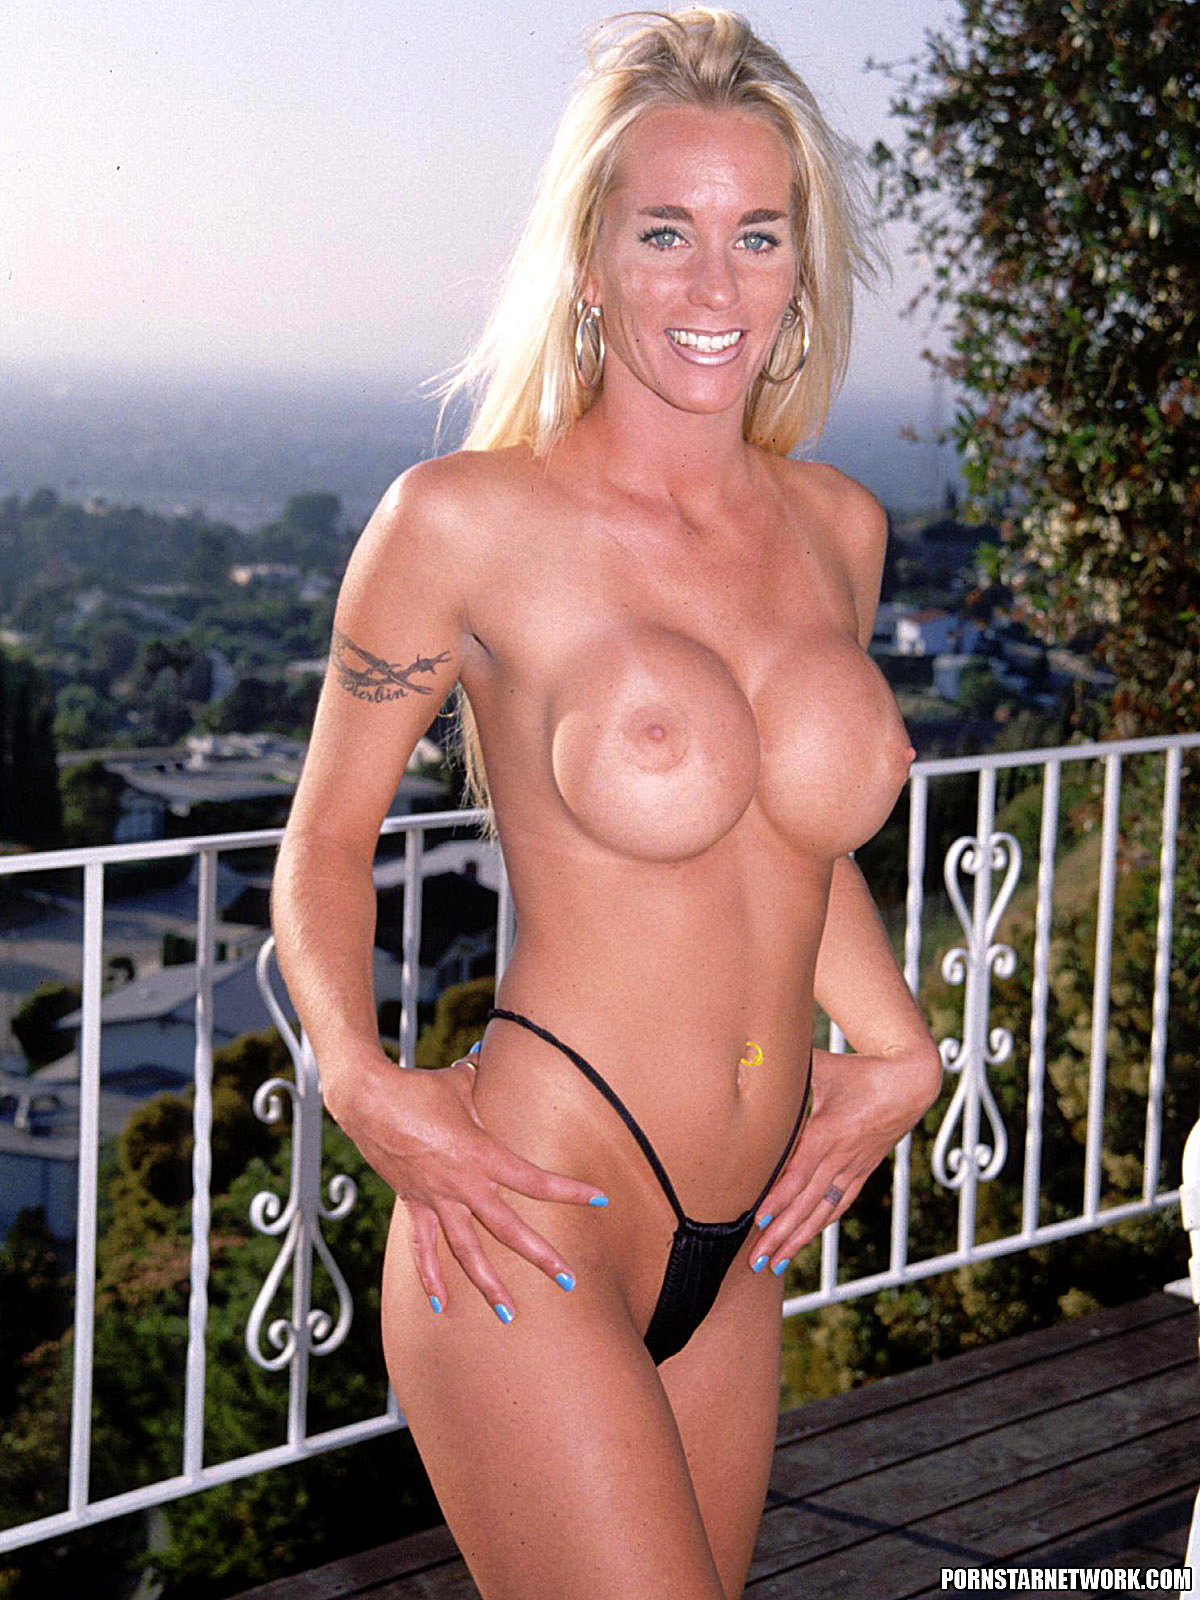 Cheyanne - Blonde Milf With Big Tits Loves Anal 58557-5387